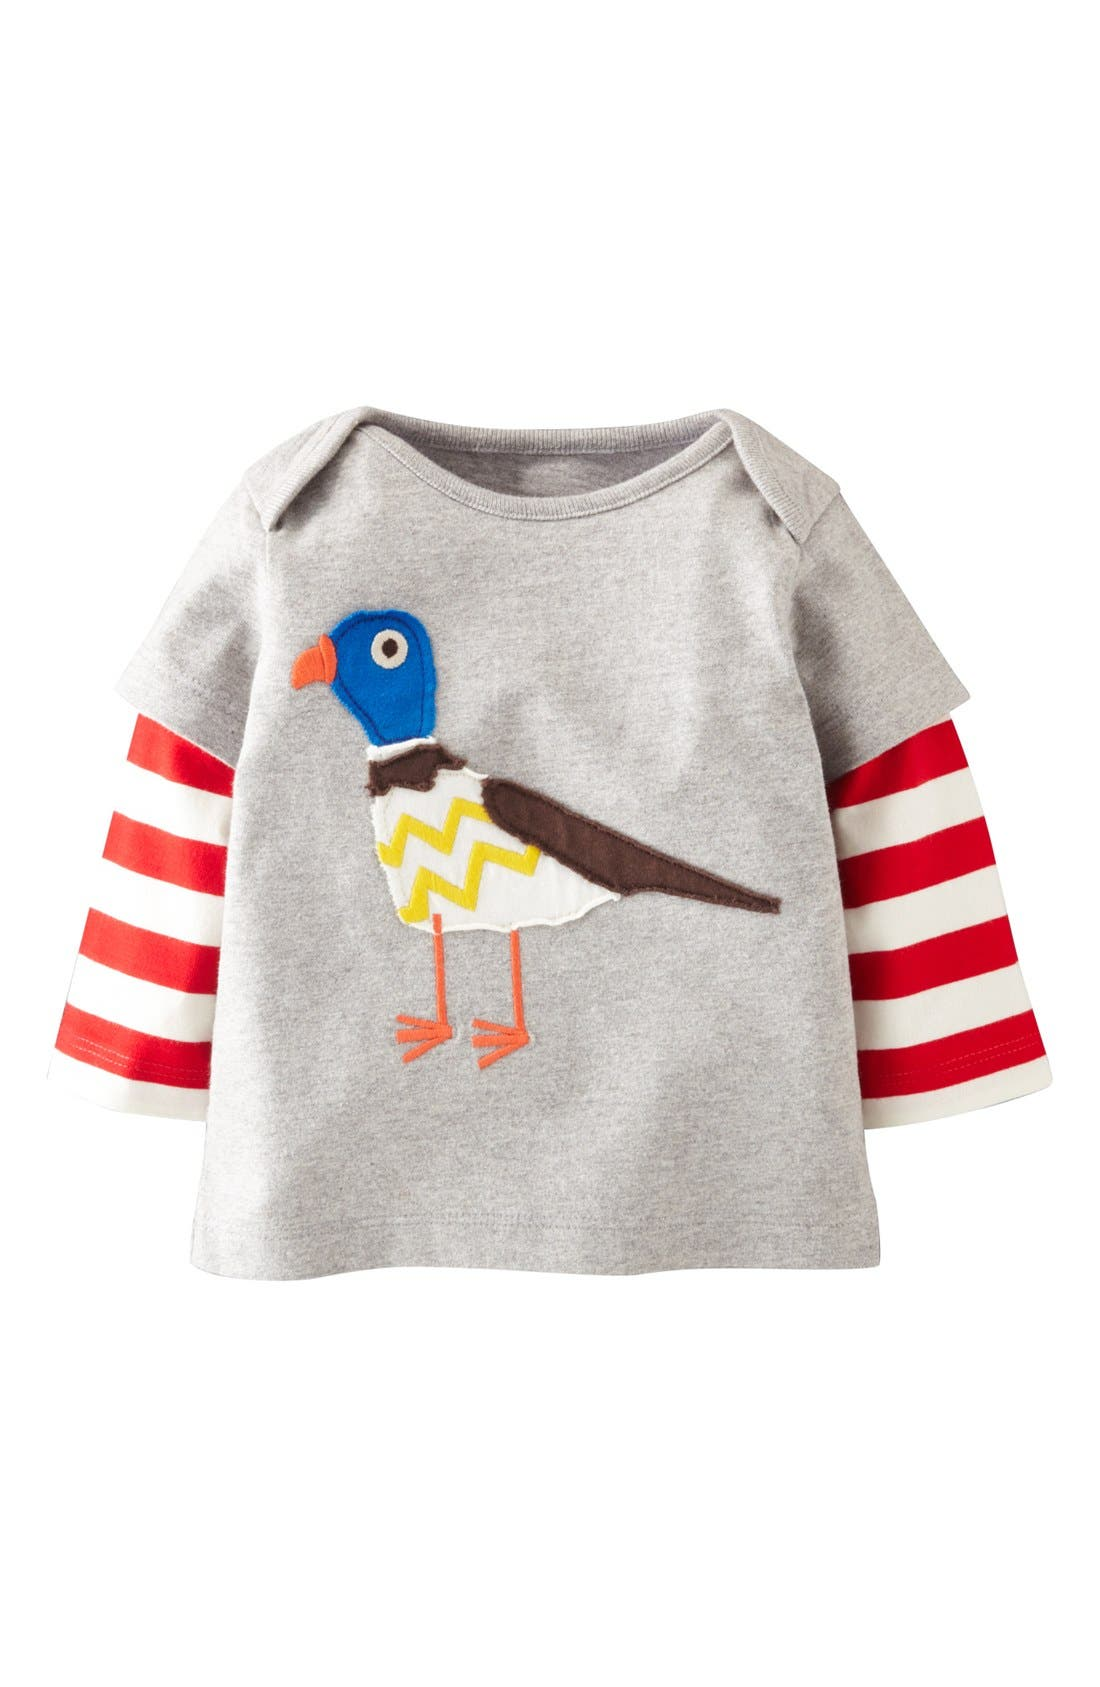 Alternate Image 1 Selected - Mini Boden 'London' Appliqué Layered Sleeve T-Shirt (Baby Boys)